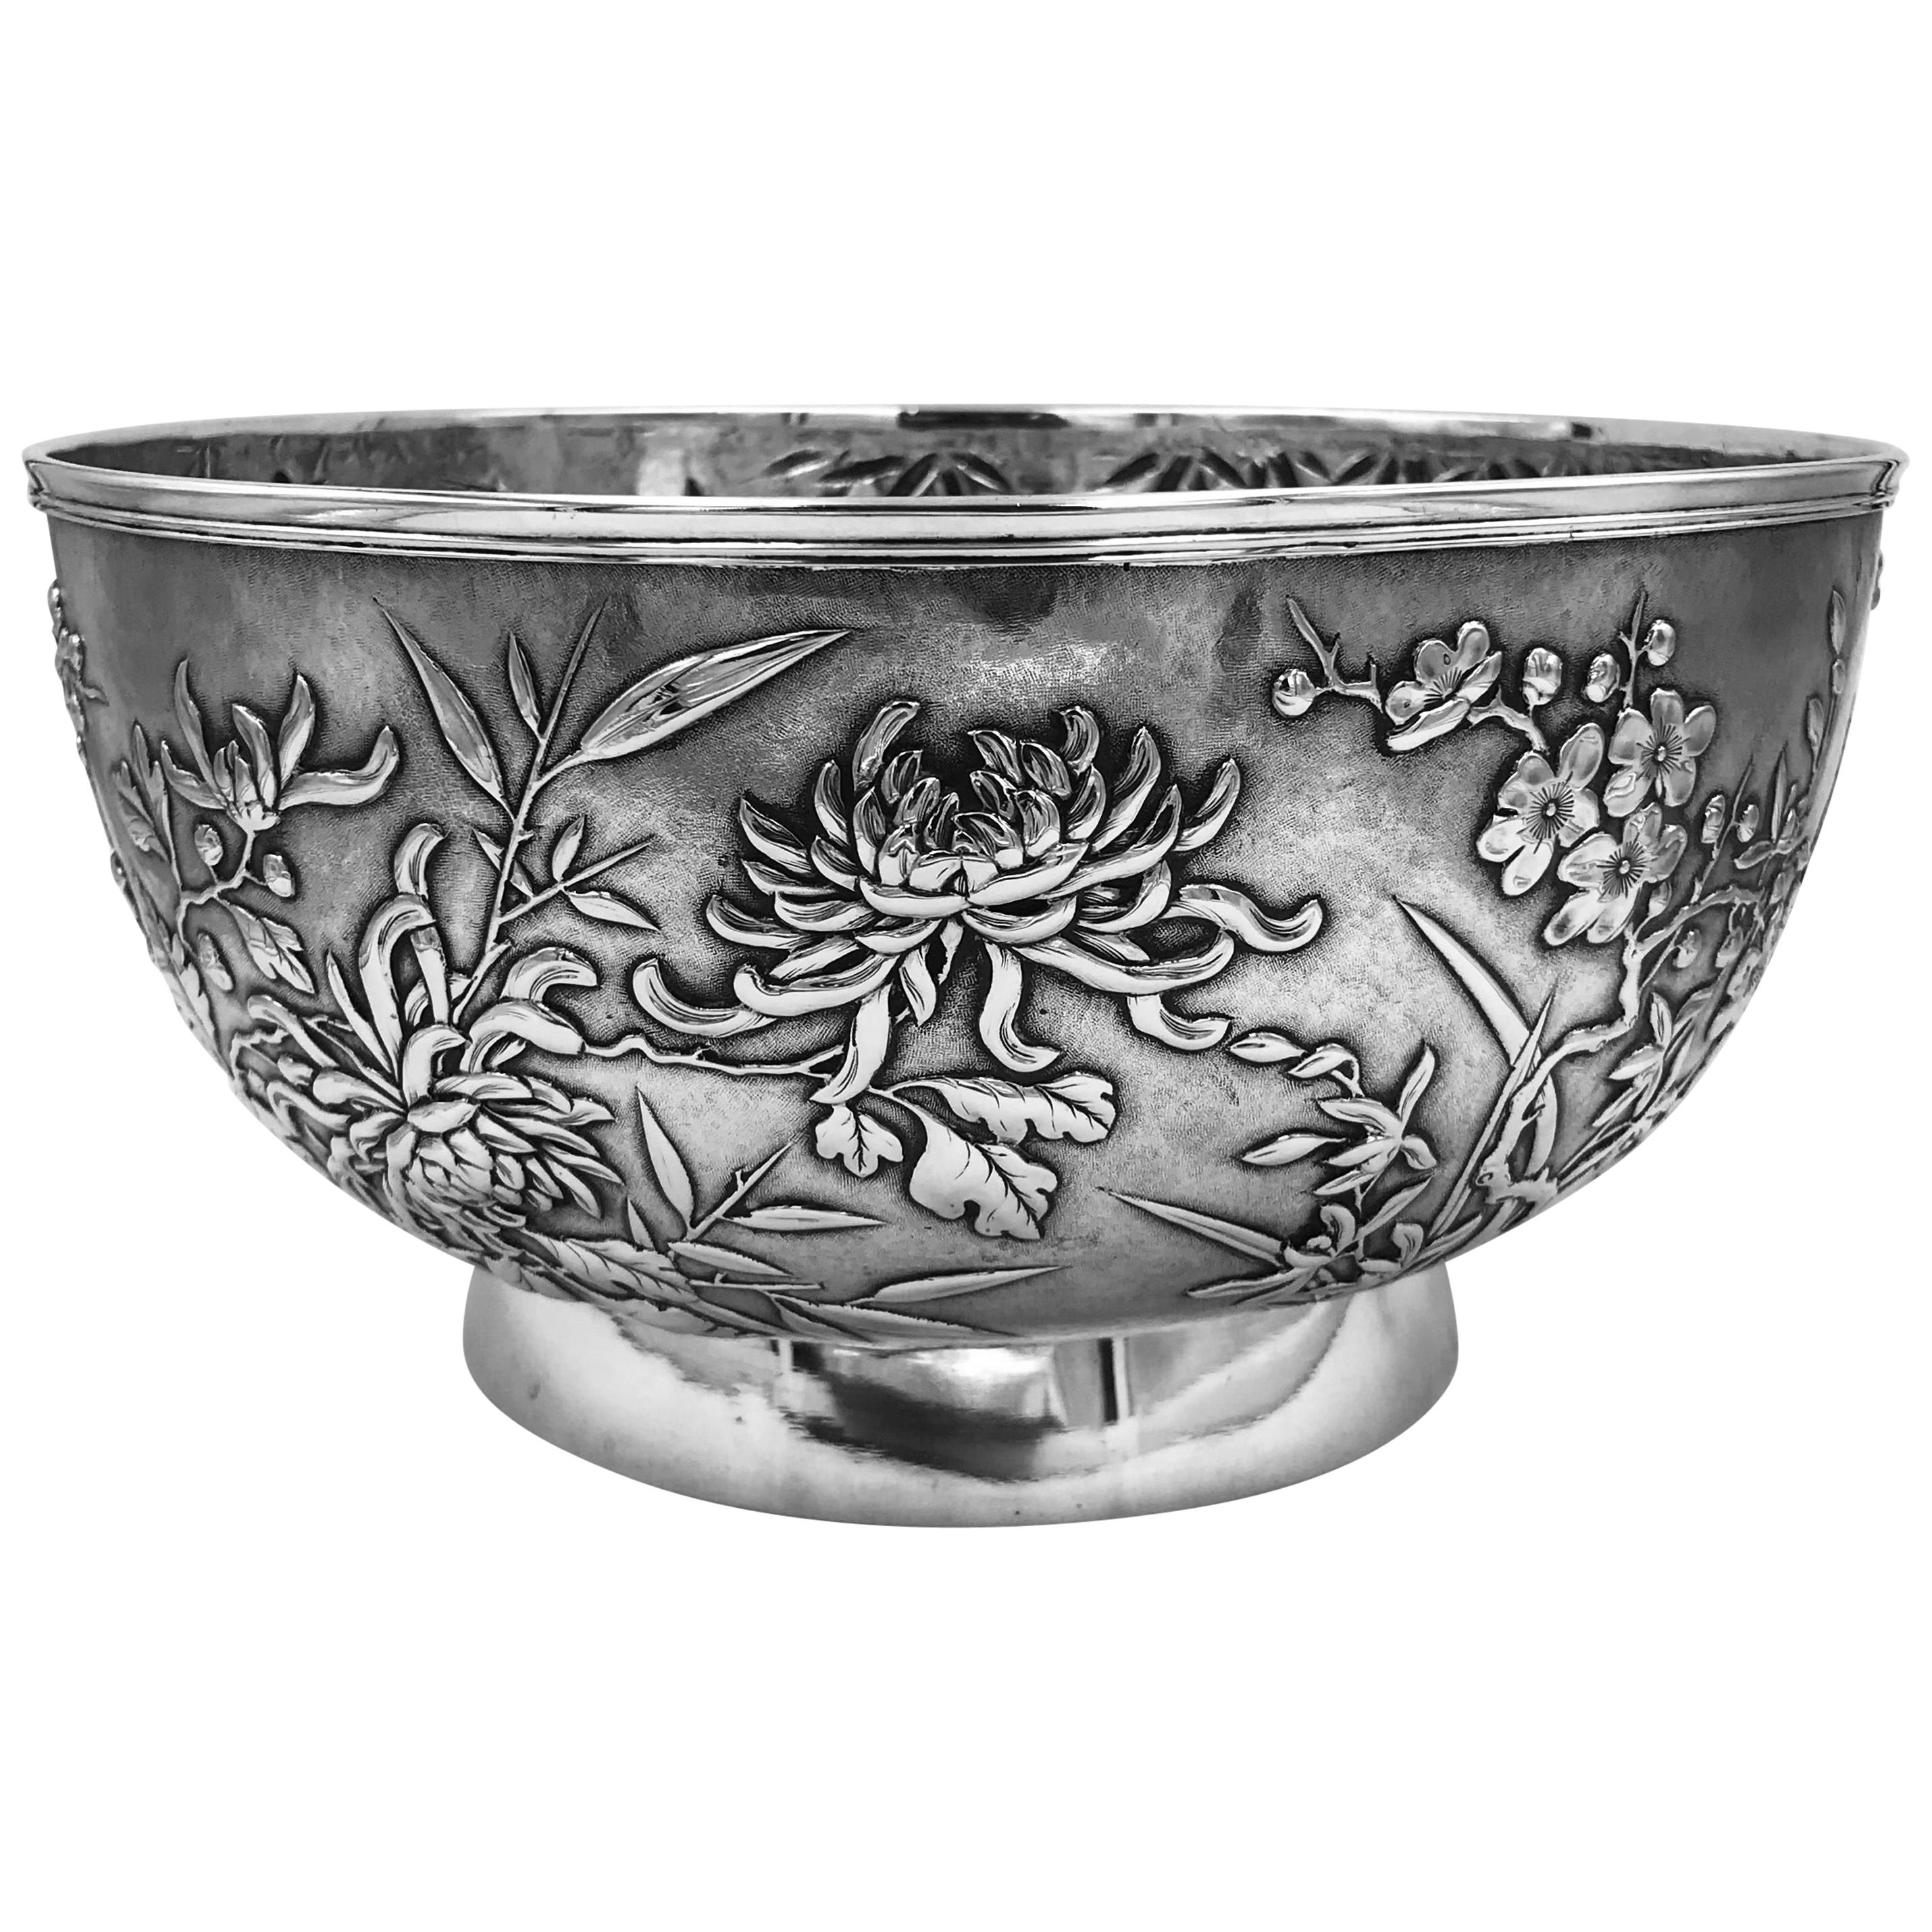 Chinese Export Silver Bowl